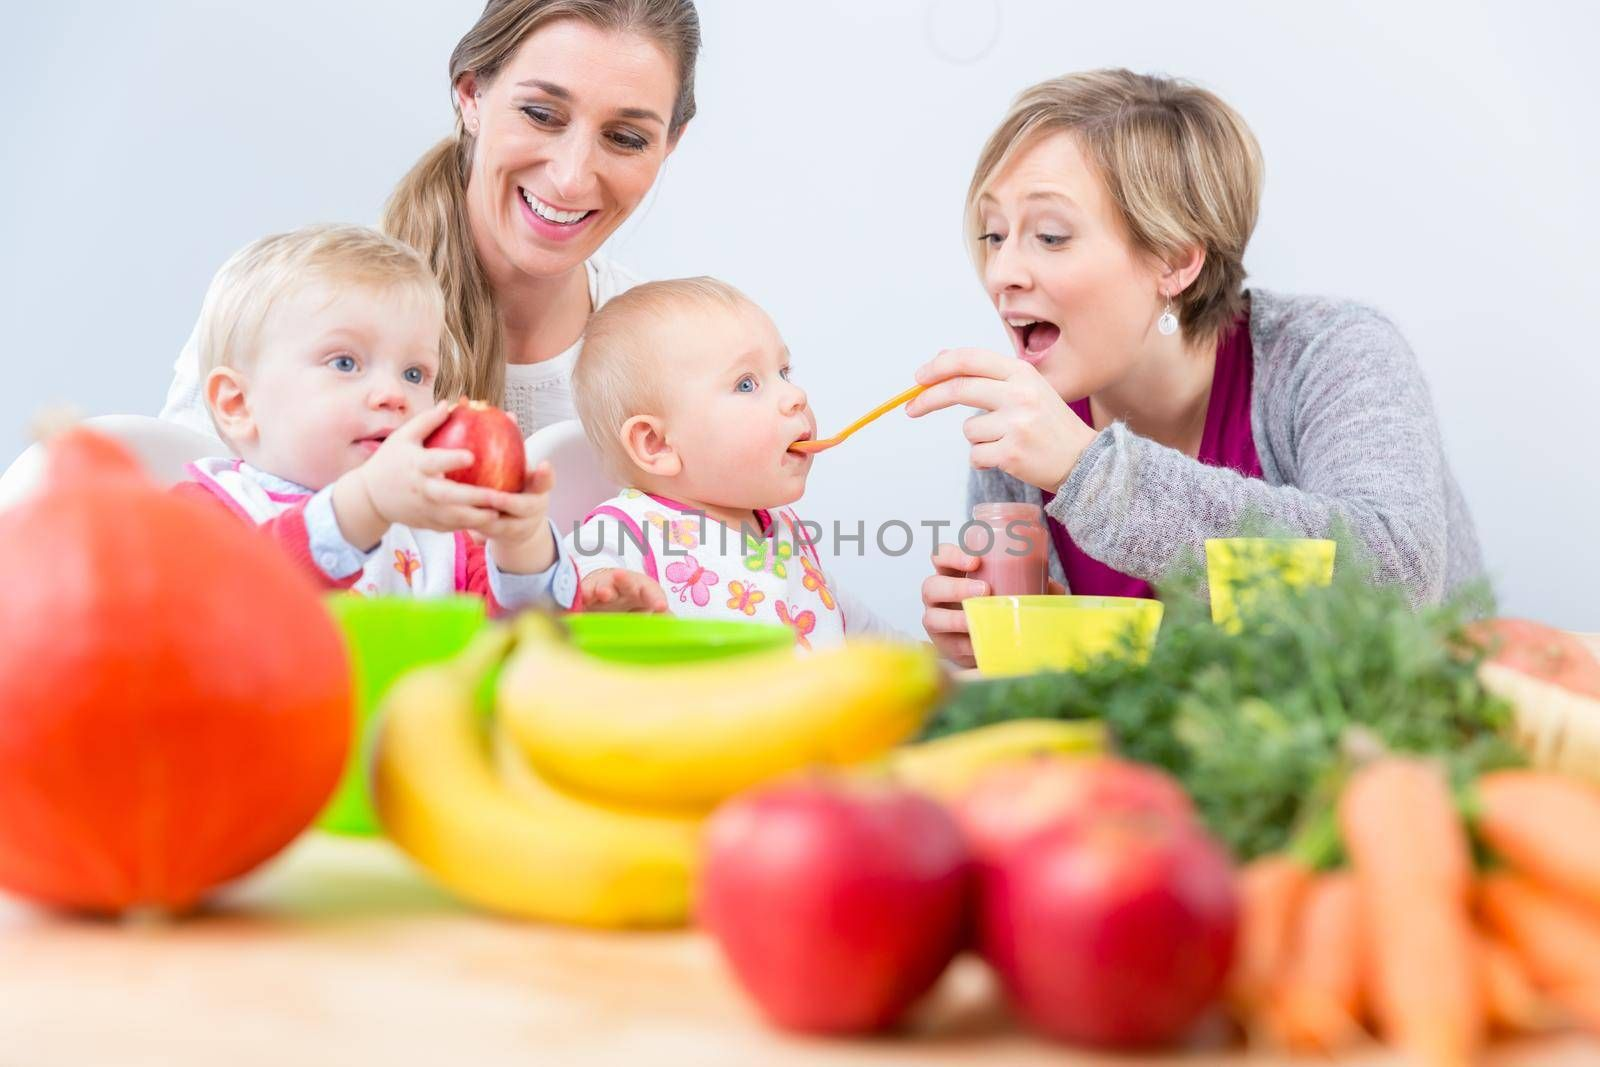 Two happy mothers and best friends smiling while feeding together their healthy baby girls at table with natural and nutritive food indoors at home